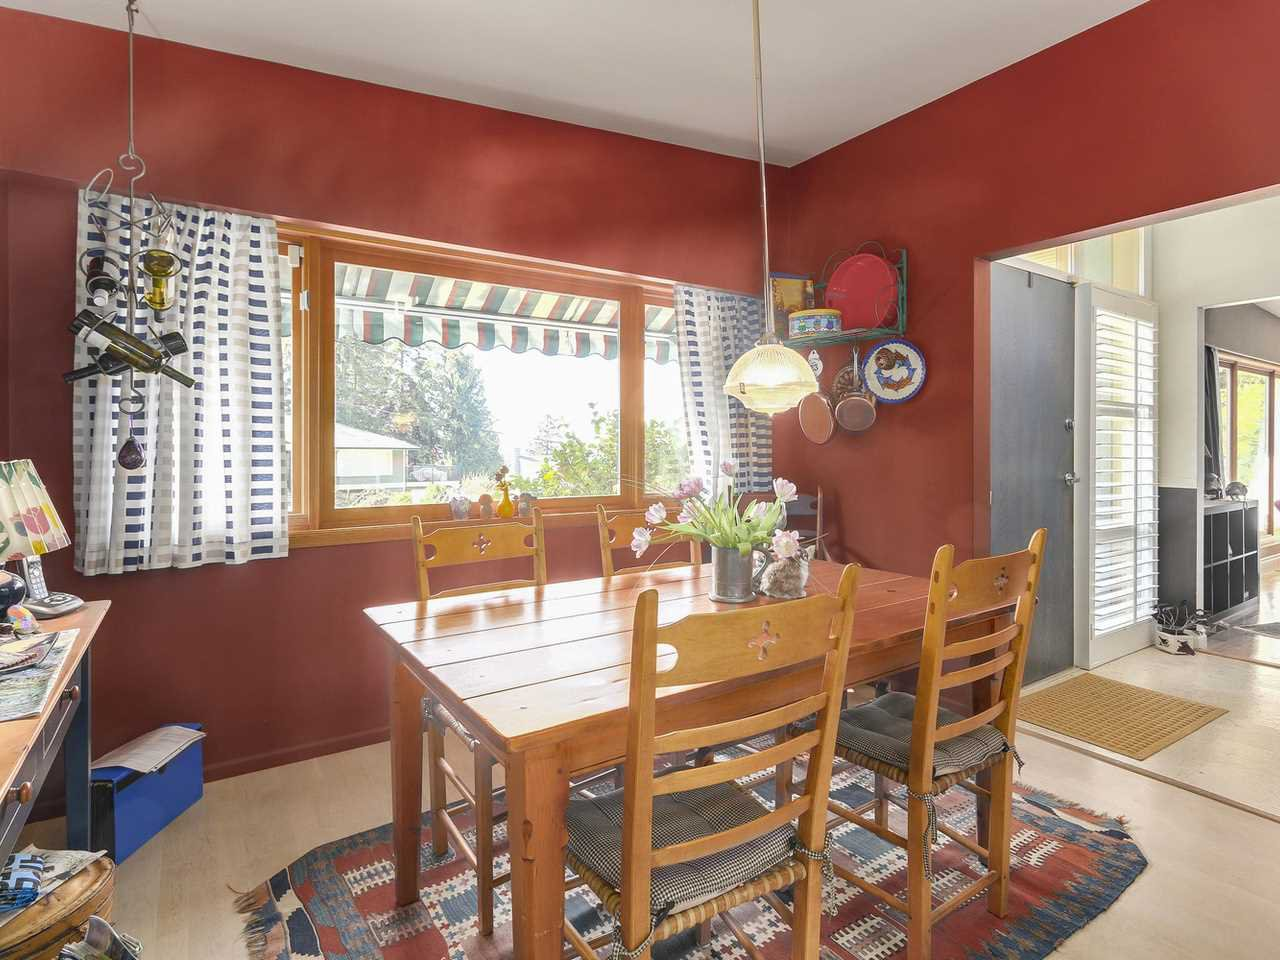 """Photo 4: Photos: 868 PROSPECT Avenue in North Vancouver: Canyon Heights NV House for sale in """"Canyon Heights"""" : MLS®# R2156117"""